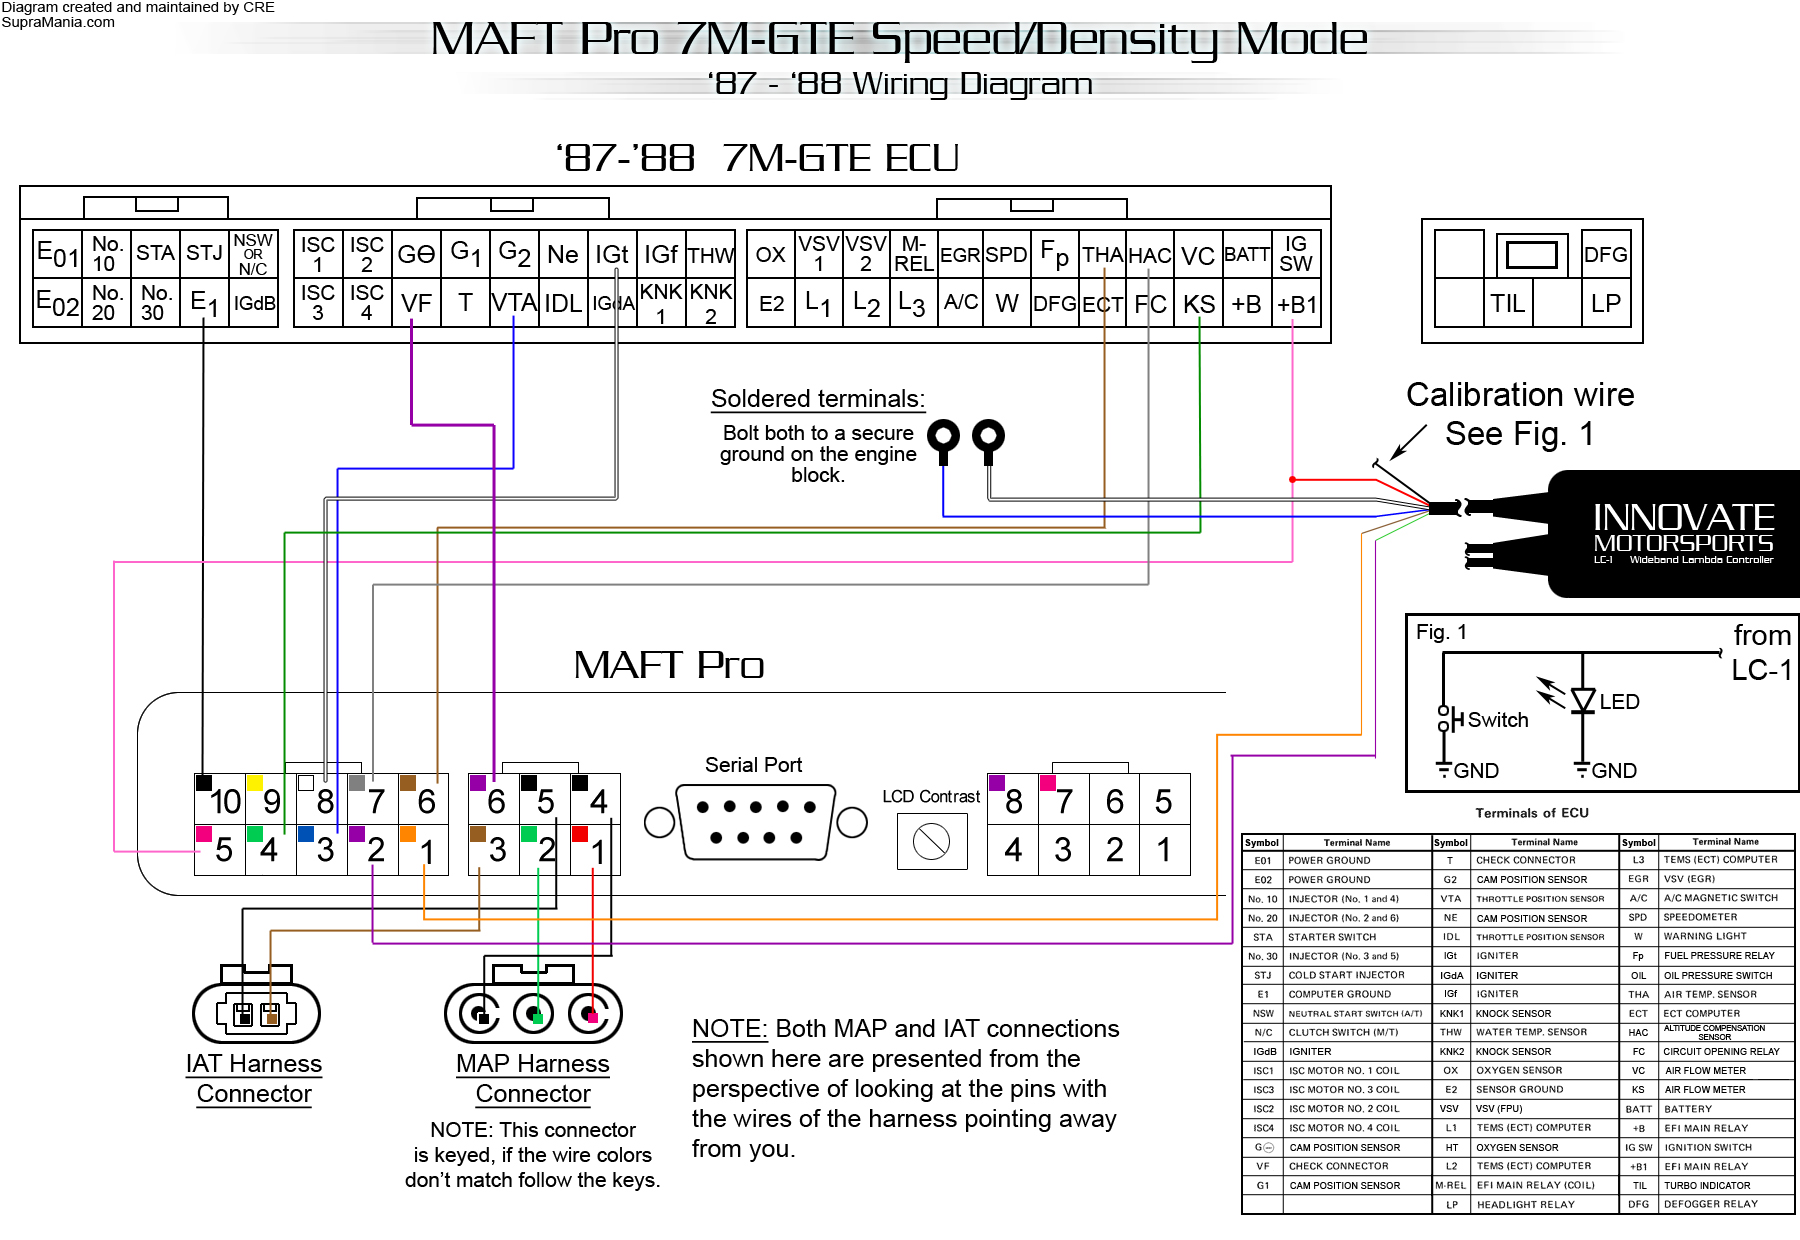 MAFT Pro 7M GTE SD 87 88 maft pro 7m gte sd 87 88 jpg 7mgte wiring diagram at fashall.co